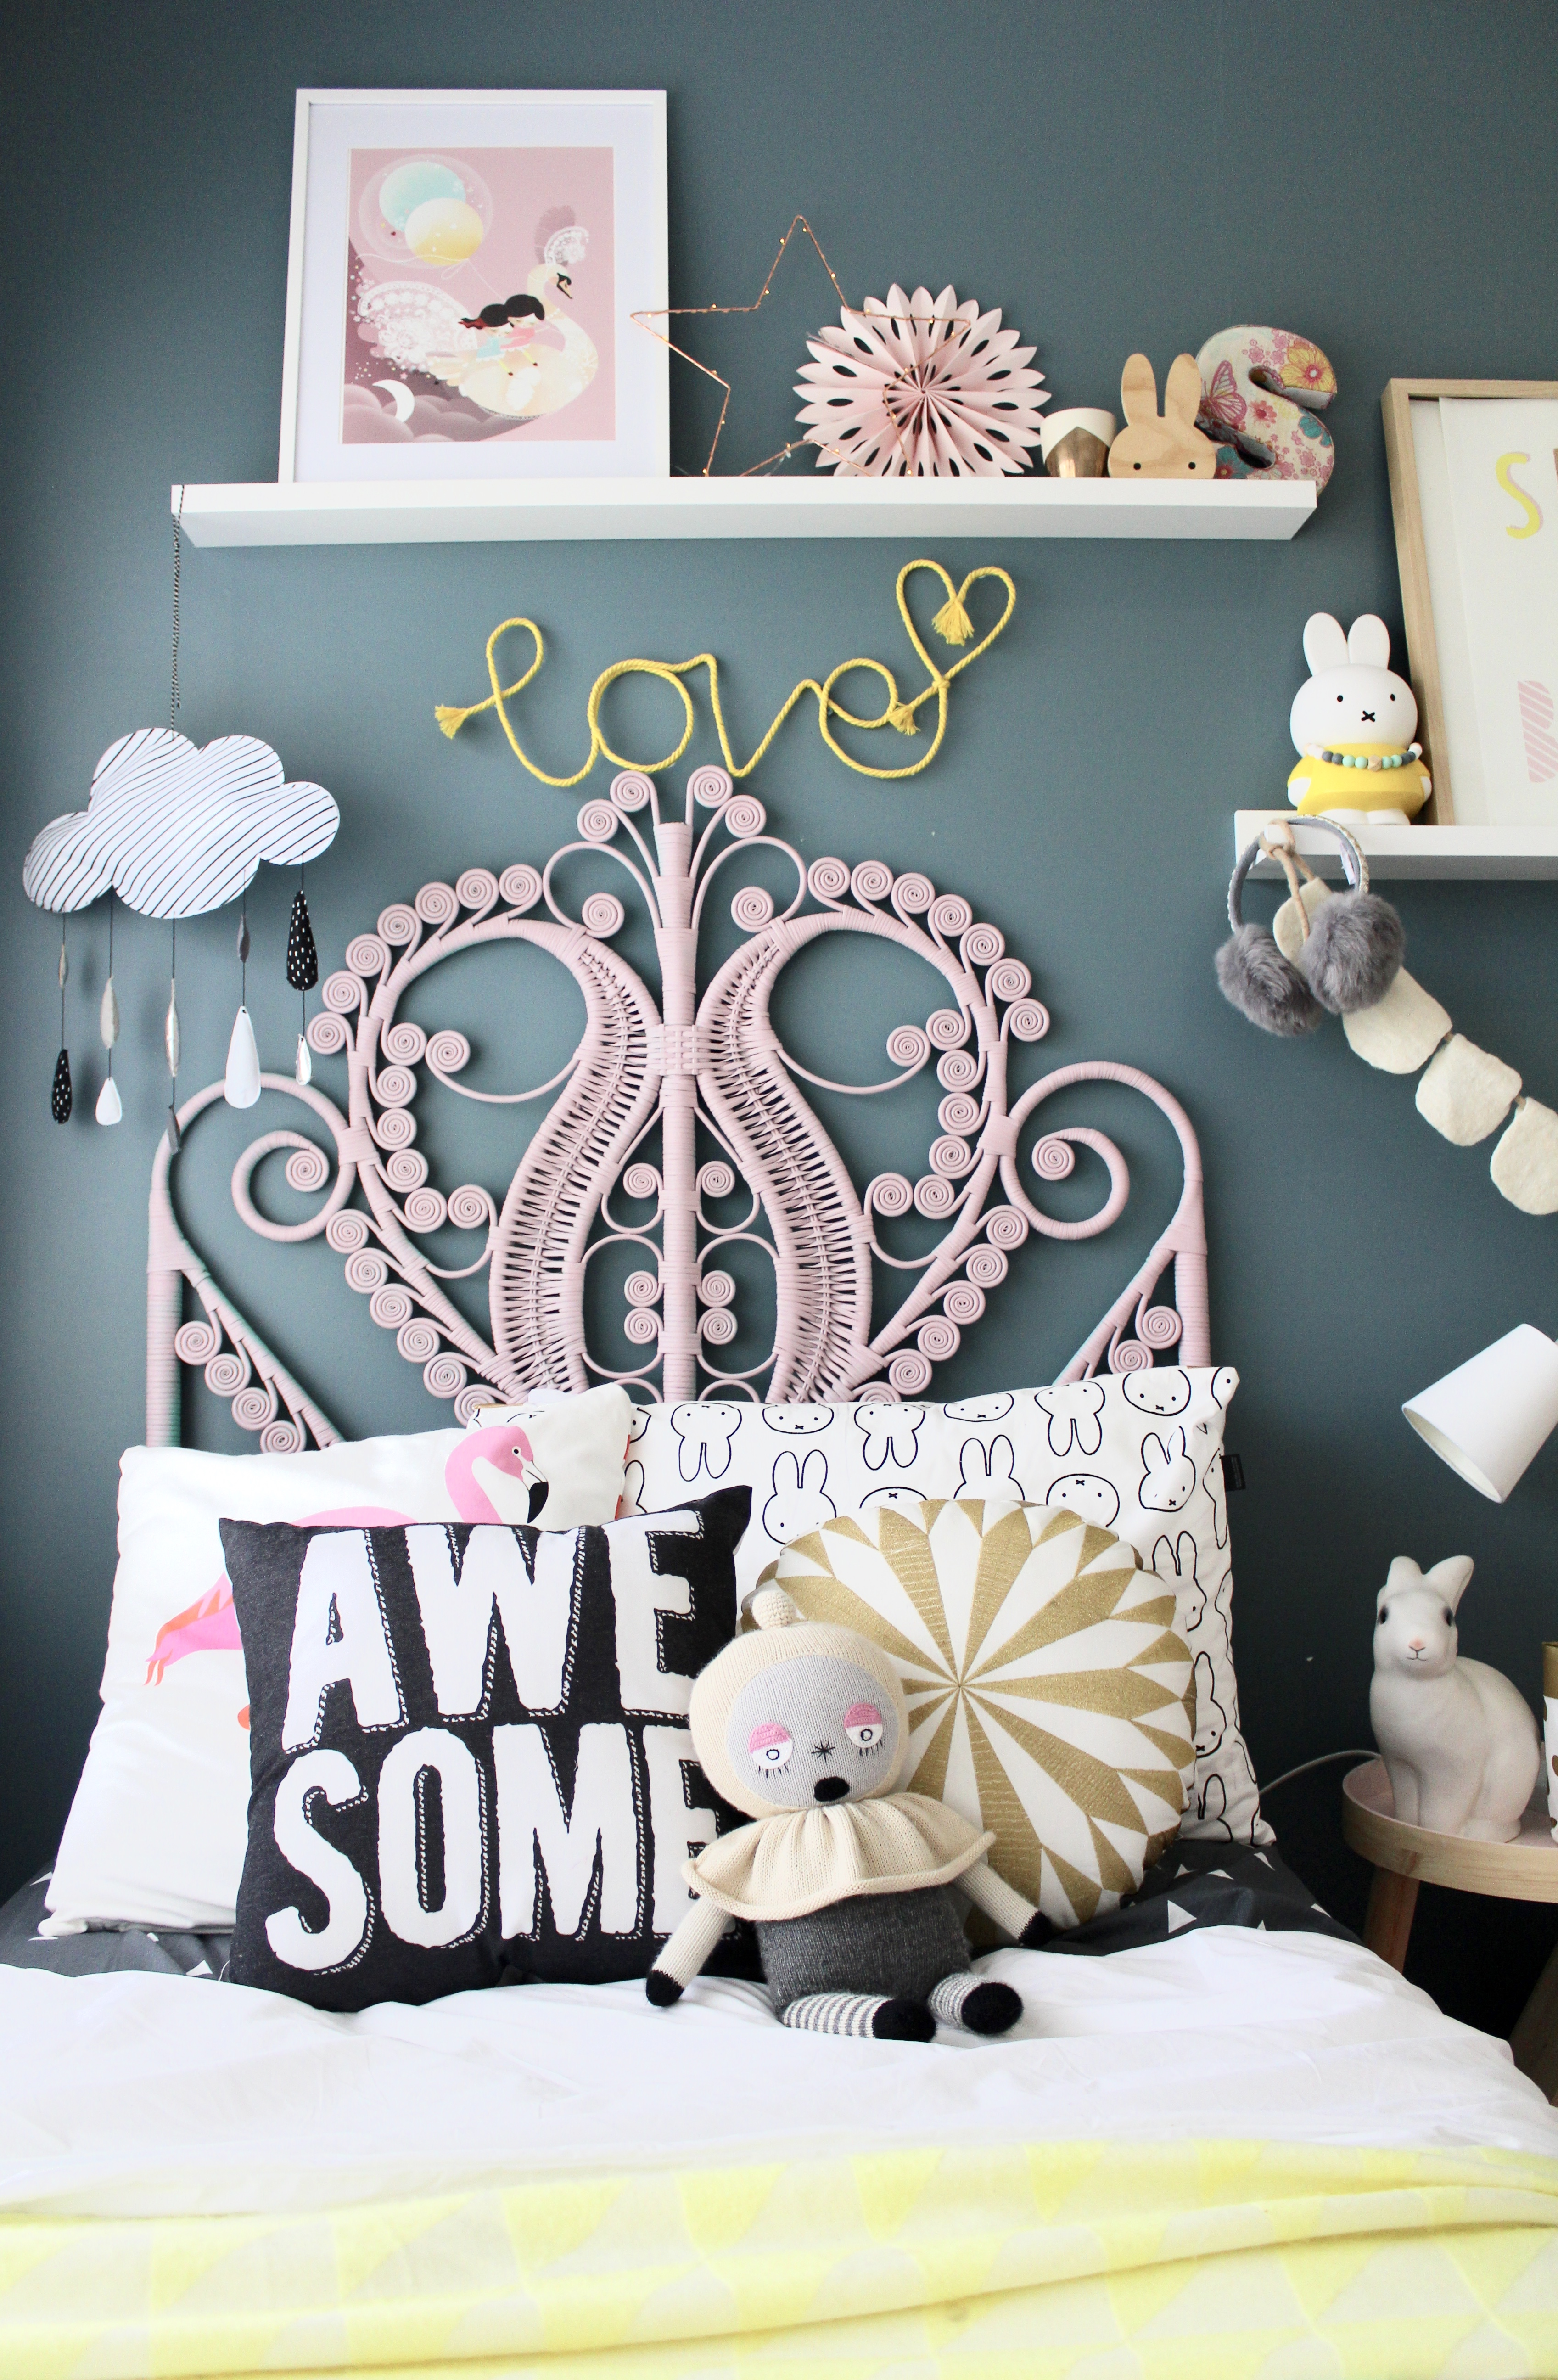 Interiors and decor - simple wall art DIY